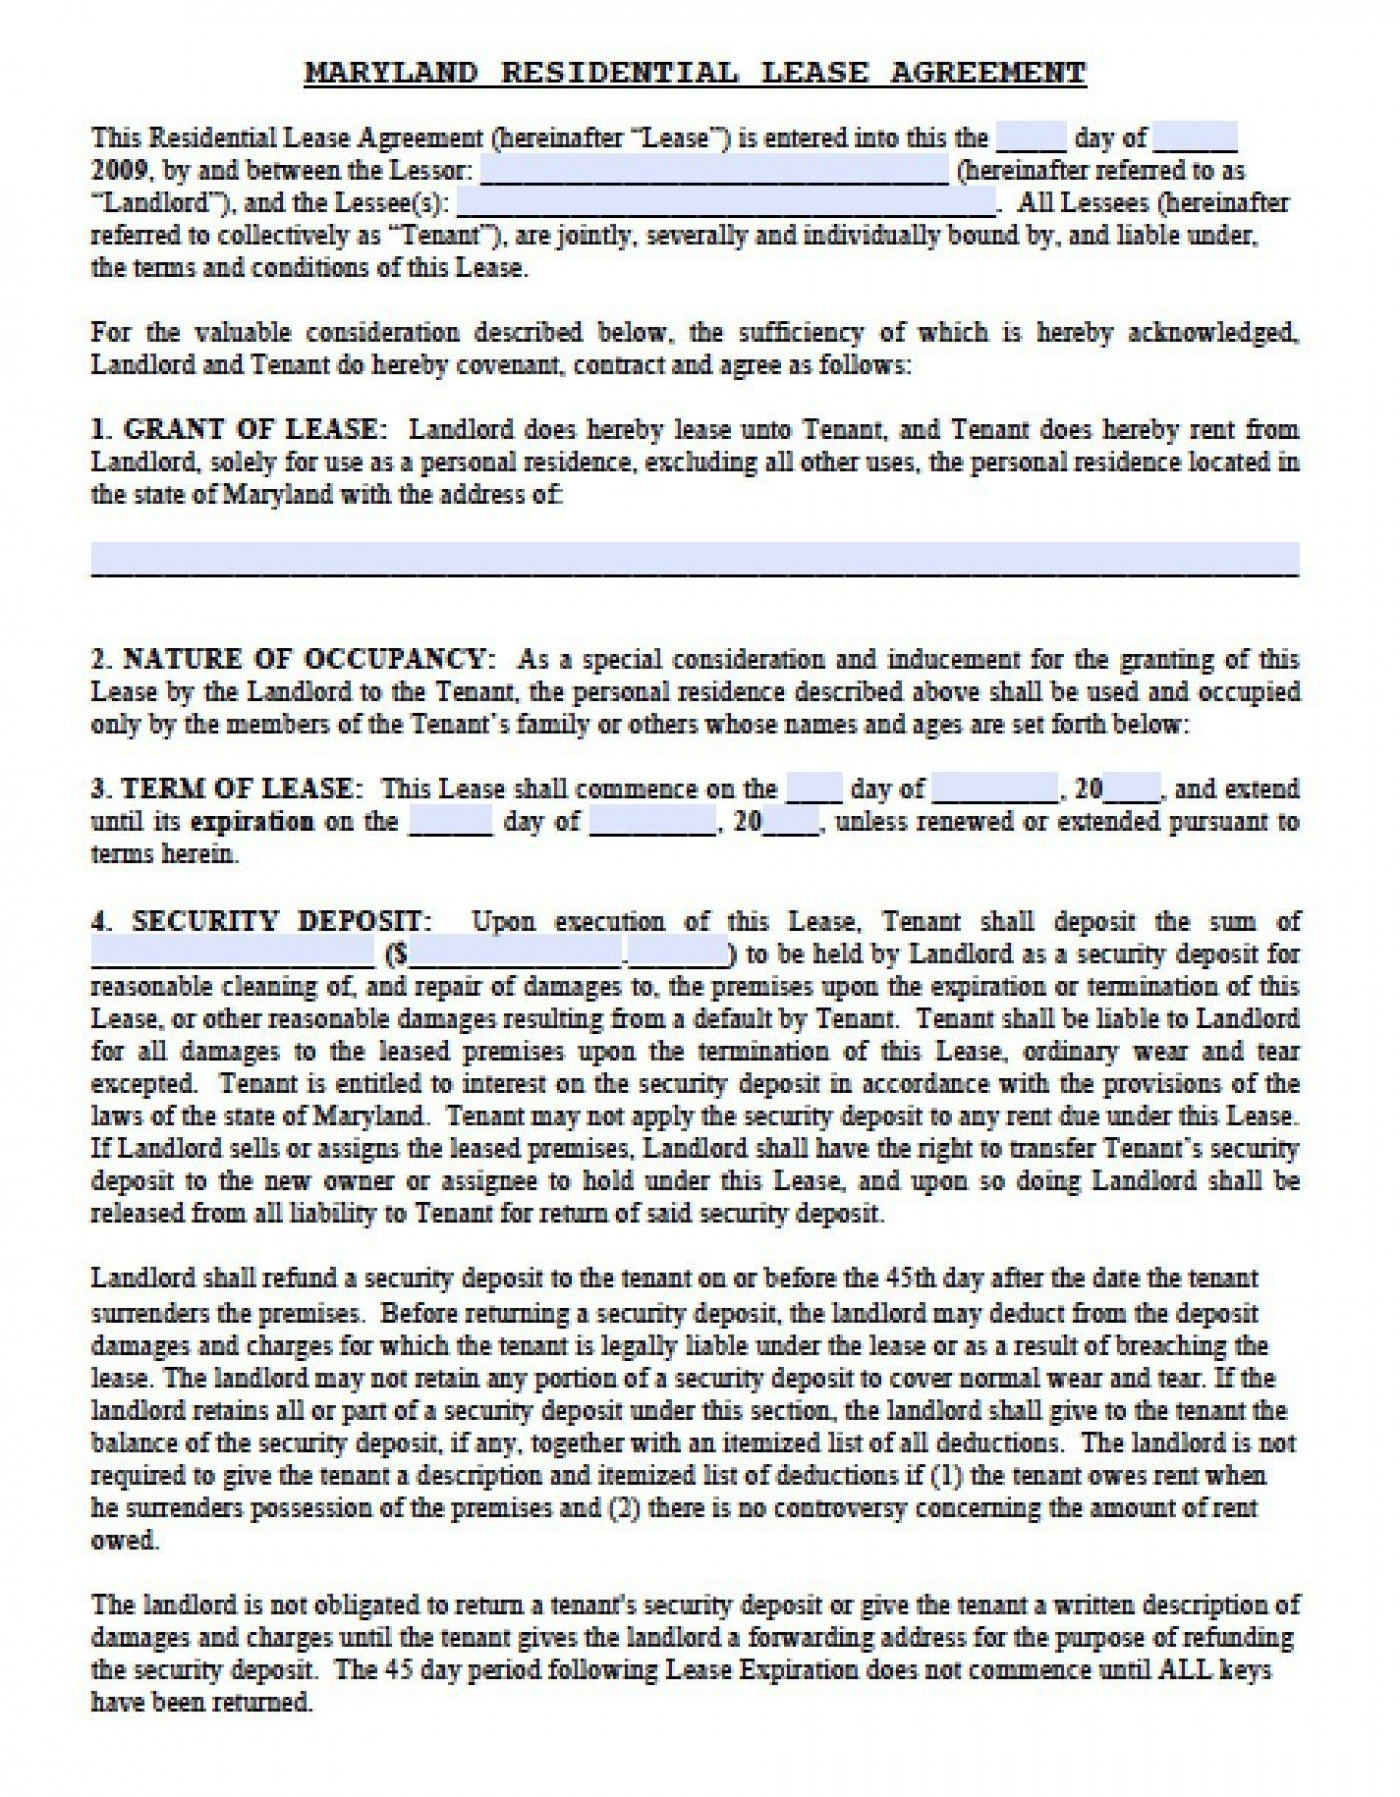 006 Dreaded Generic Rental Lease Agreement Md High Resolution  Sample Maryland1400